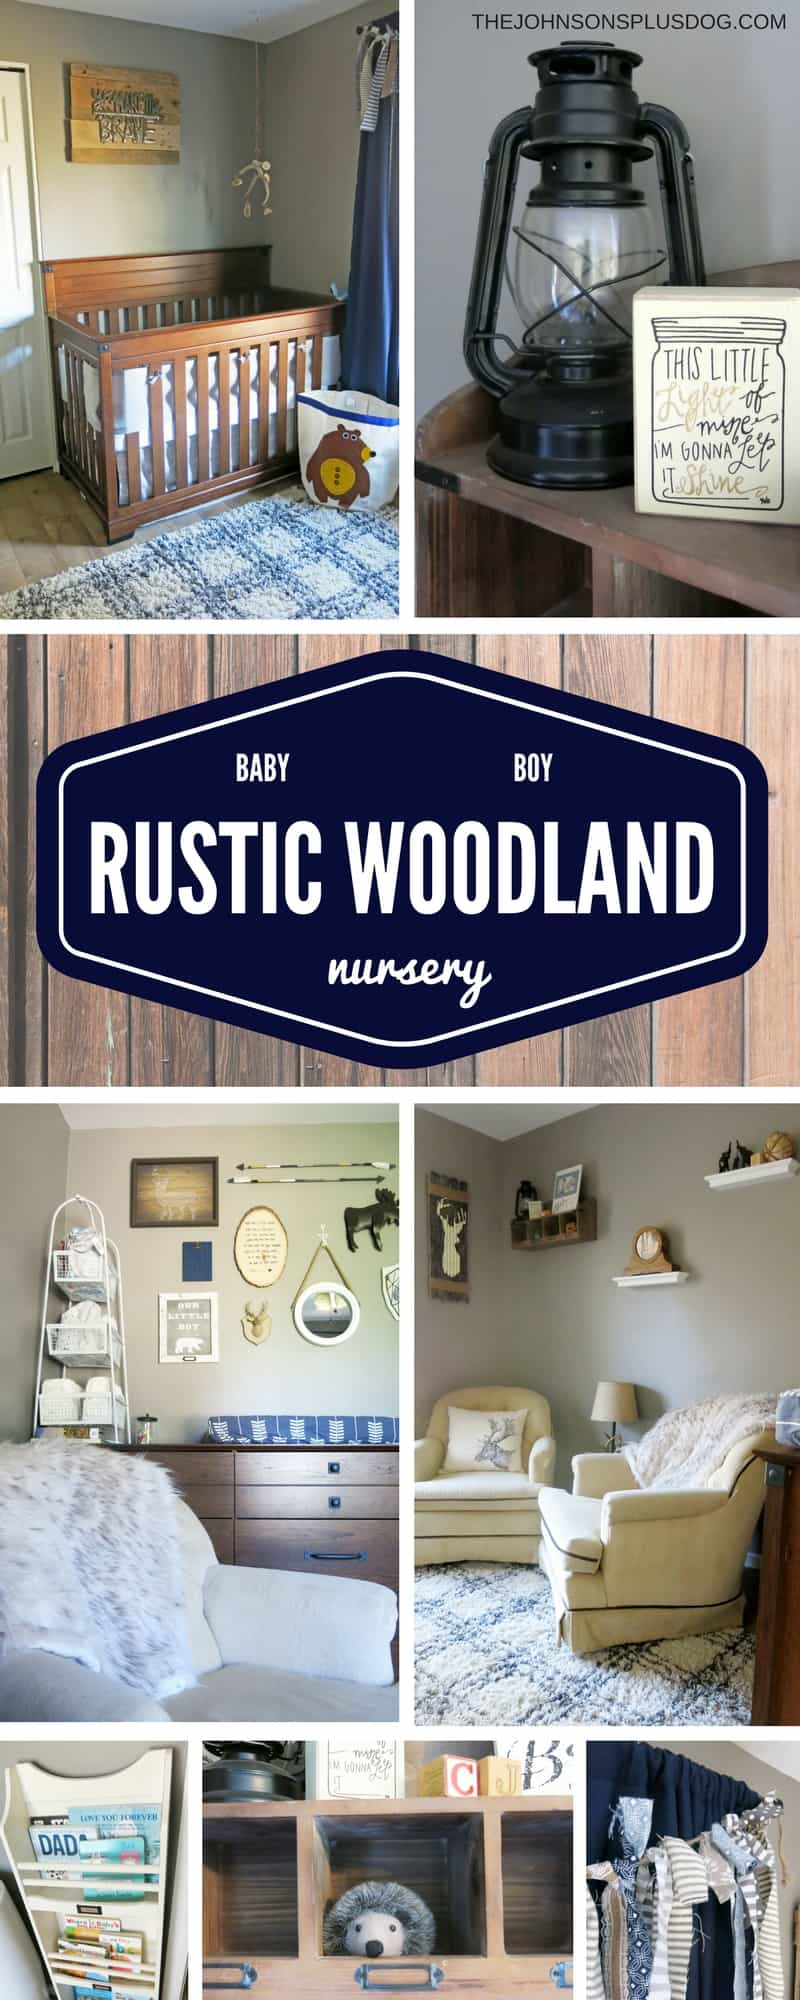 Rustic Woodland Nursery For Baby Boy Love This Rustic